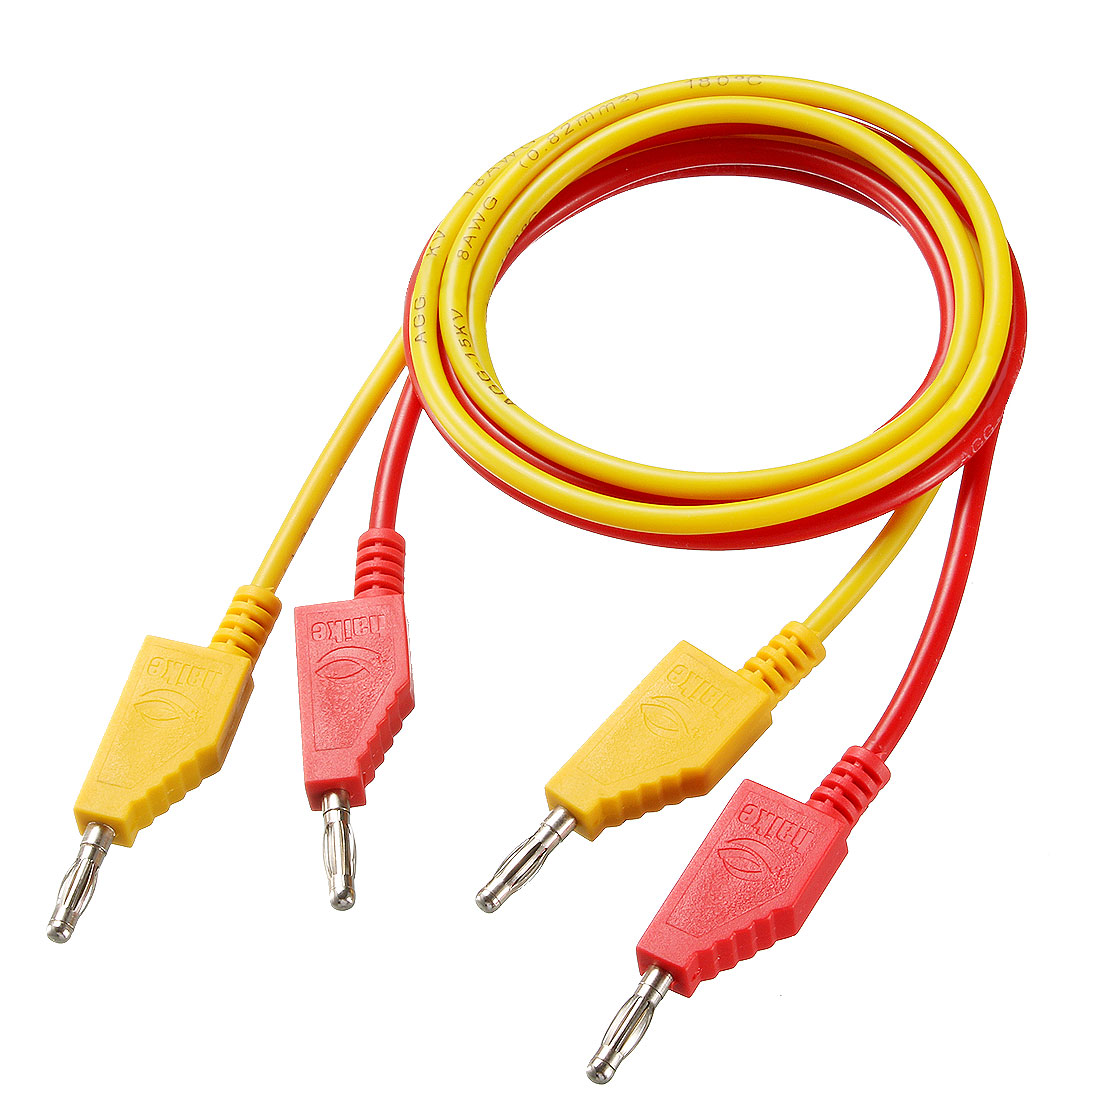 1 Pair 4mm Banana Plug Male to Male 18AWG 10A 100cmExtenders Red and Yellow